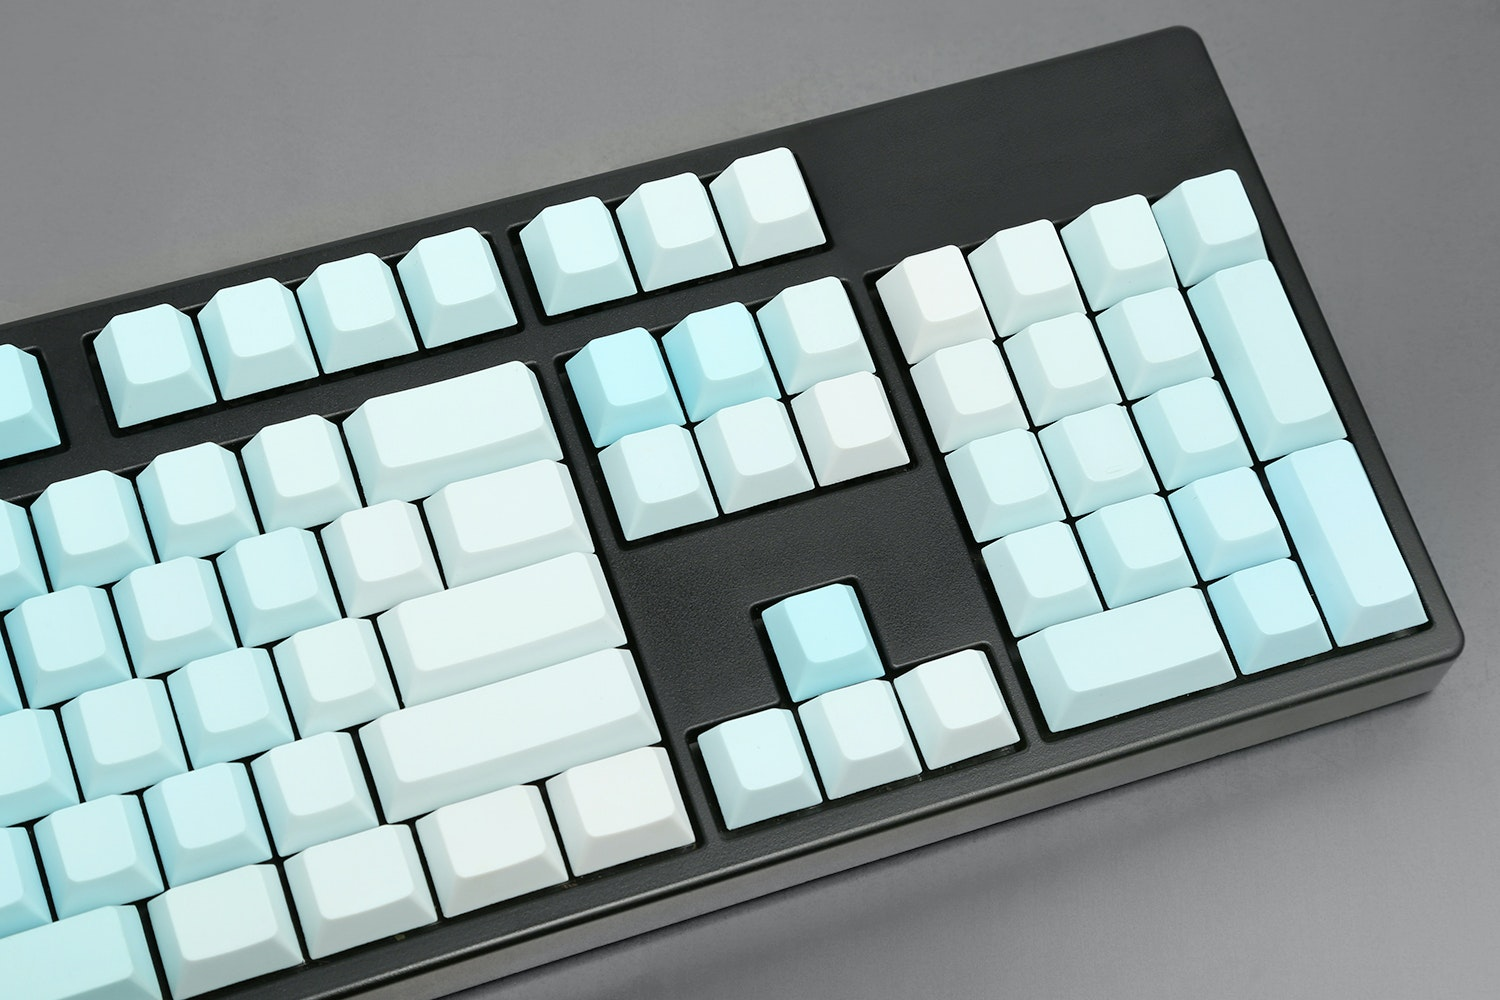 NPKC Gradient Keycap Set